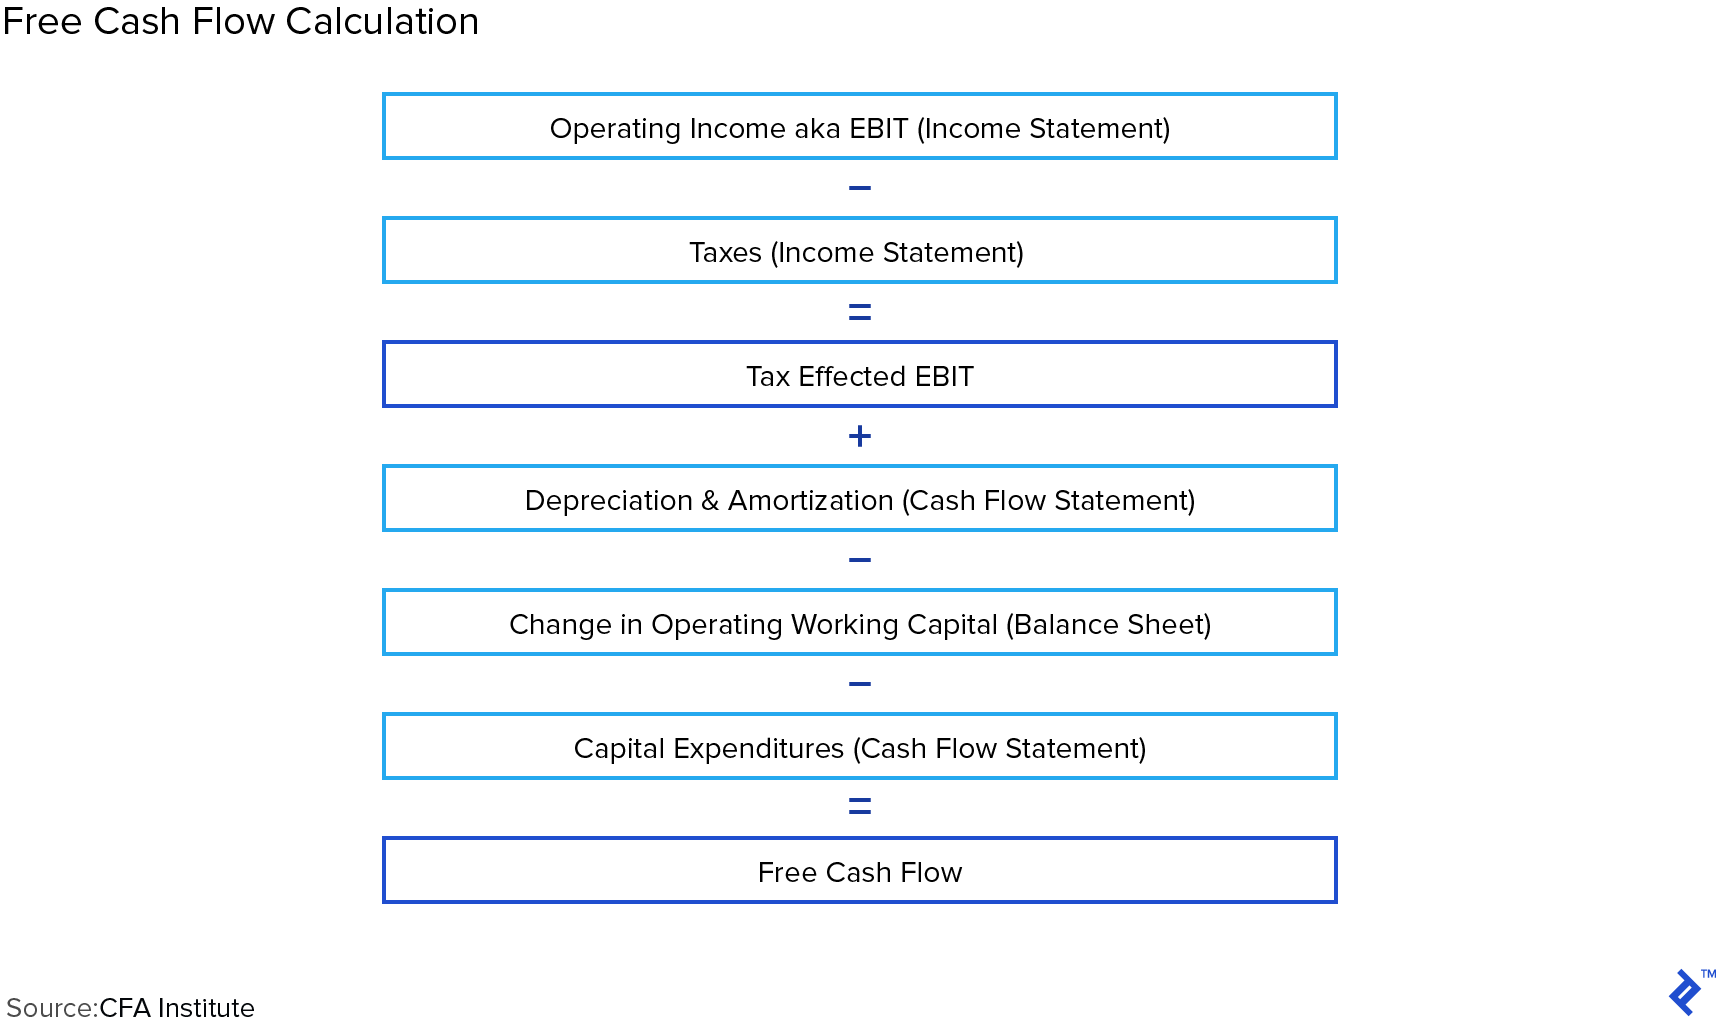 Diagram: Free Cash Flow Calculation